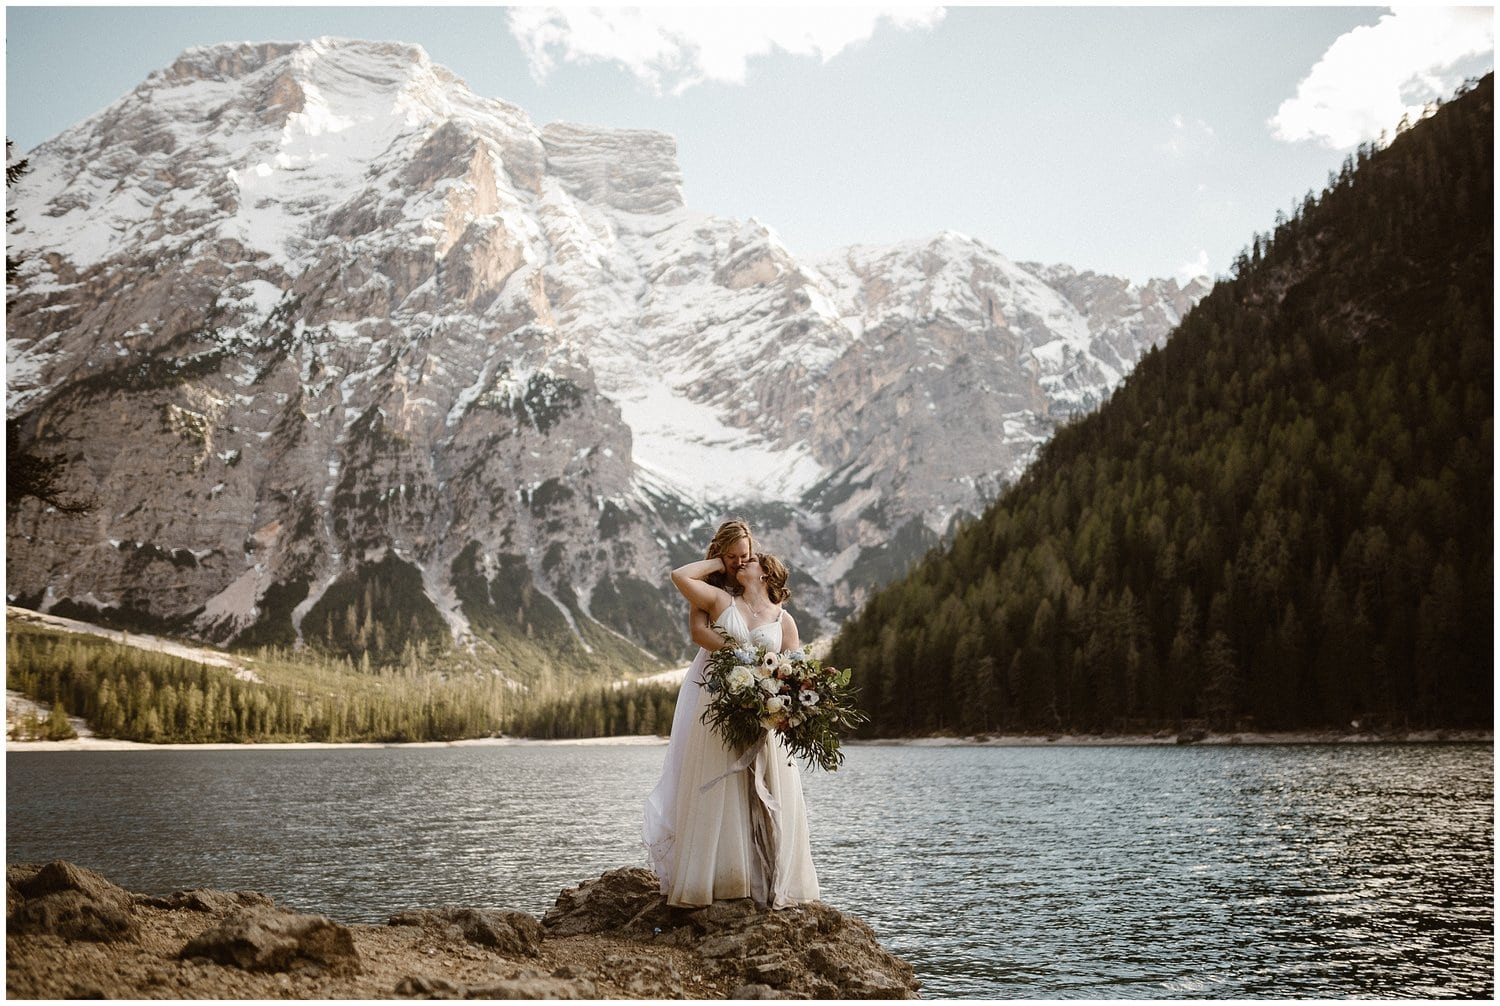 Two women embrace at the lake during their mountain elopement.